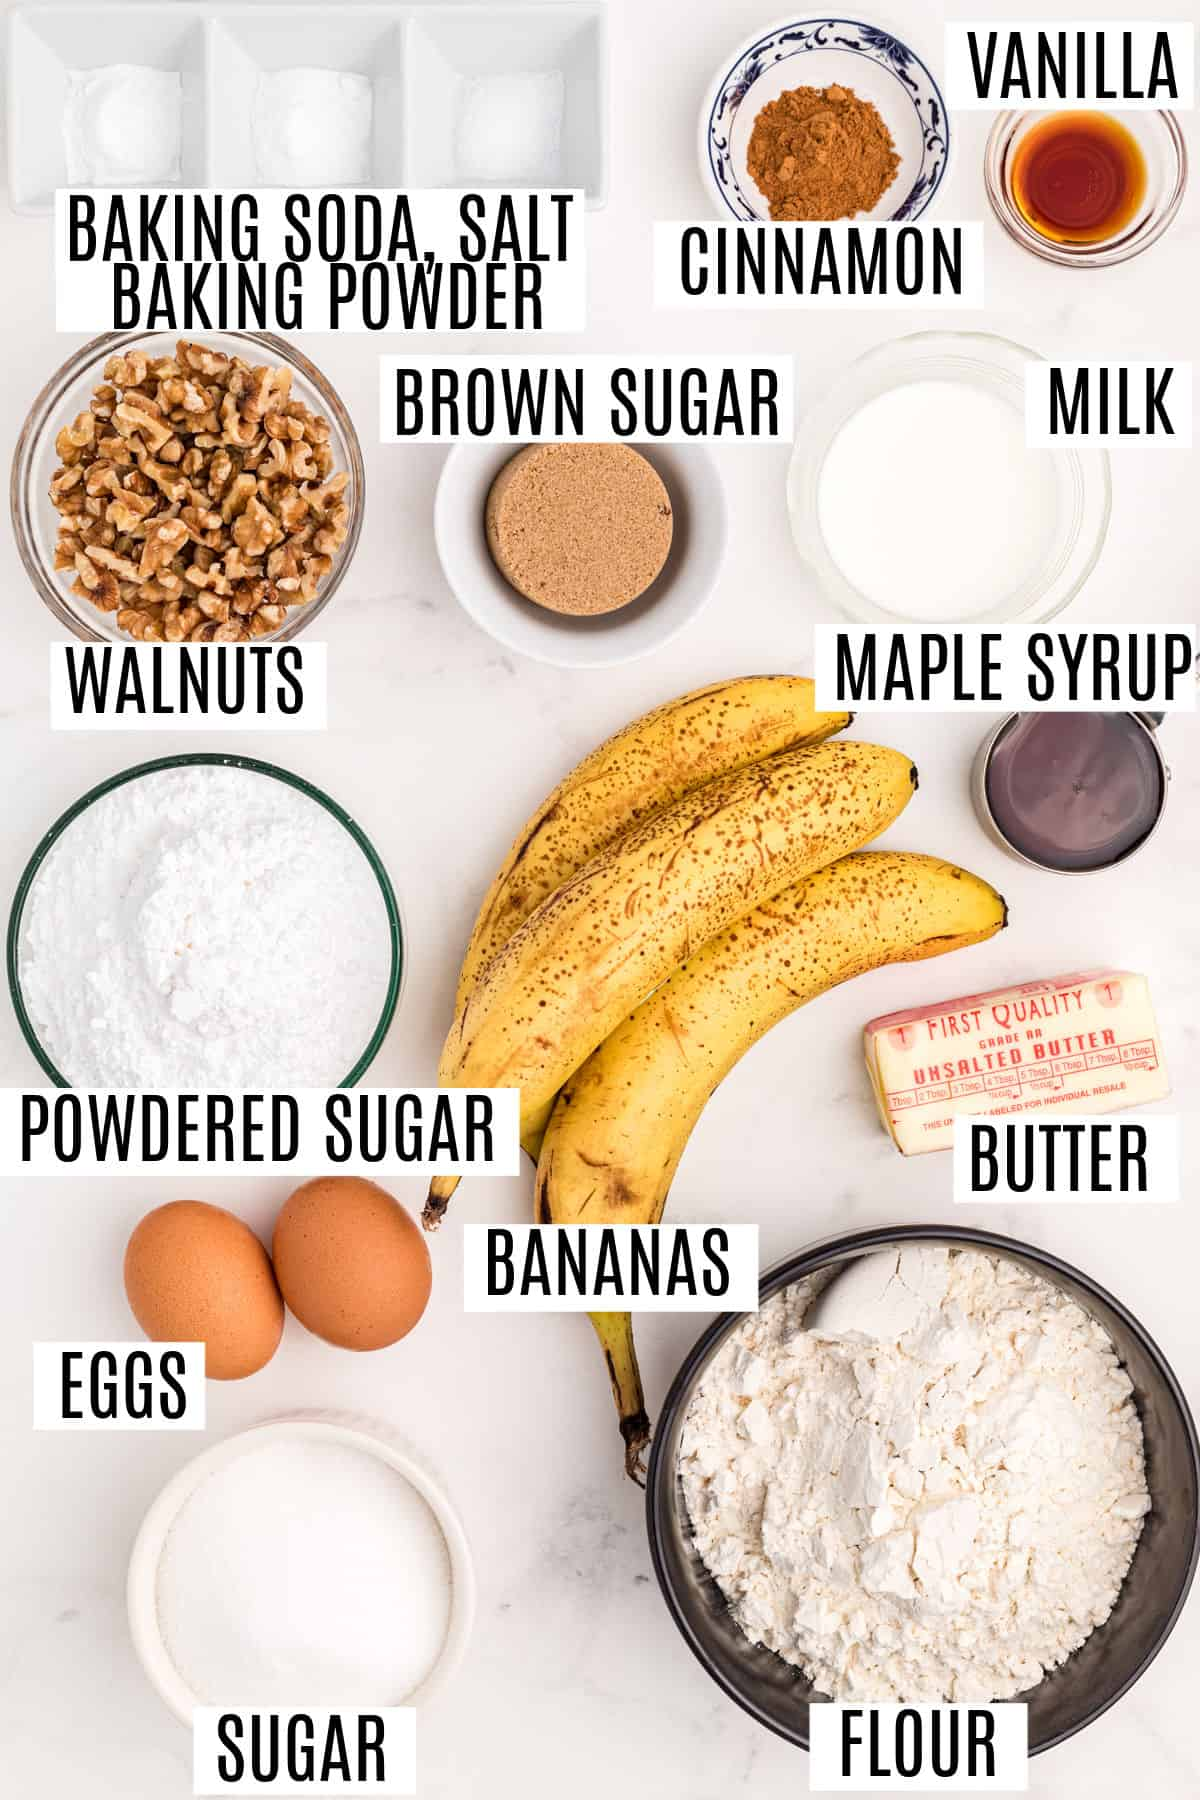 Ingredients needed for banana coffee cake recipe.